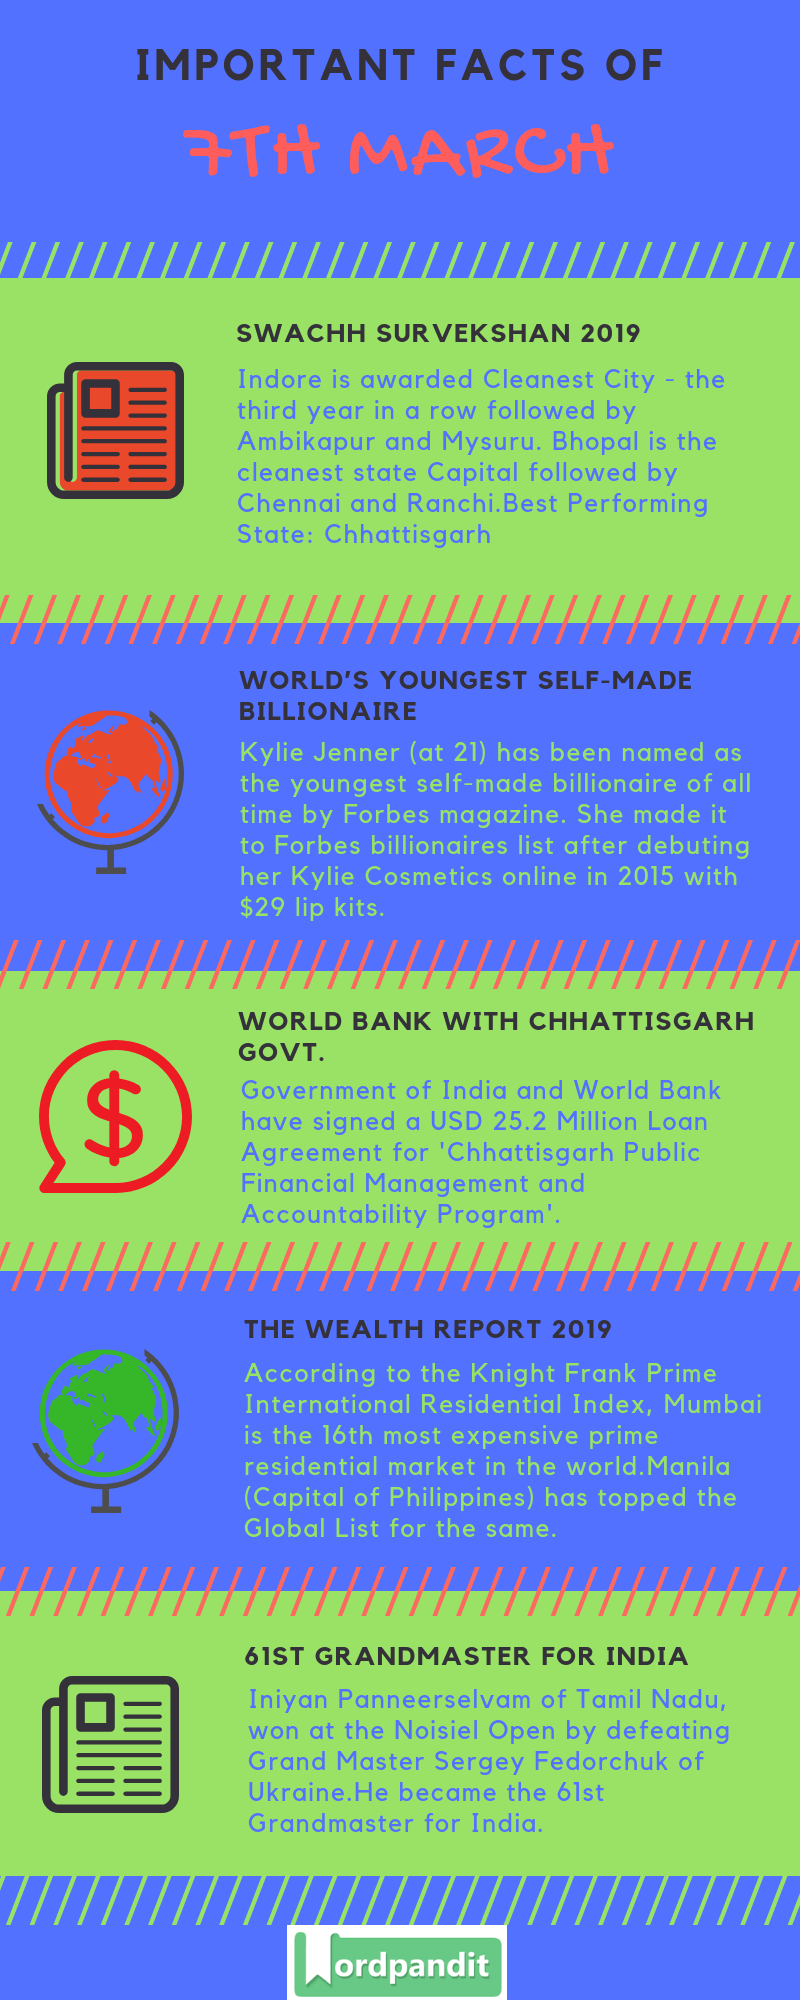 Daily Current Affairs 7 March 2019 Current Affairs Quiz 7 March 2019 Current Affairs Infographic